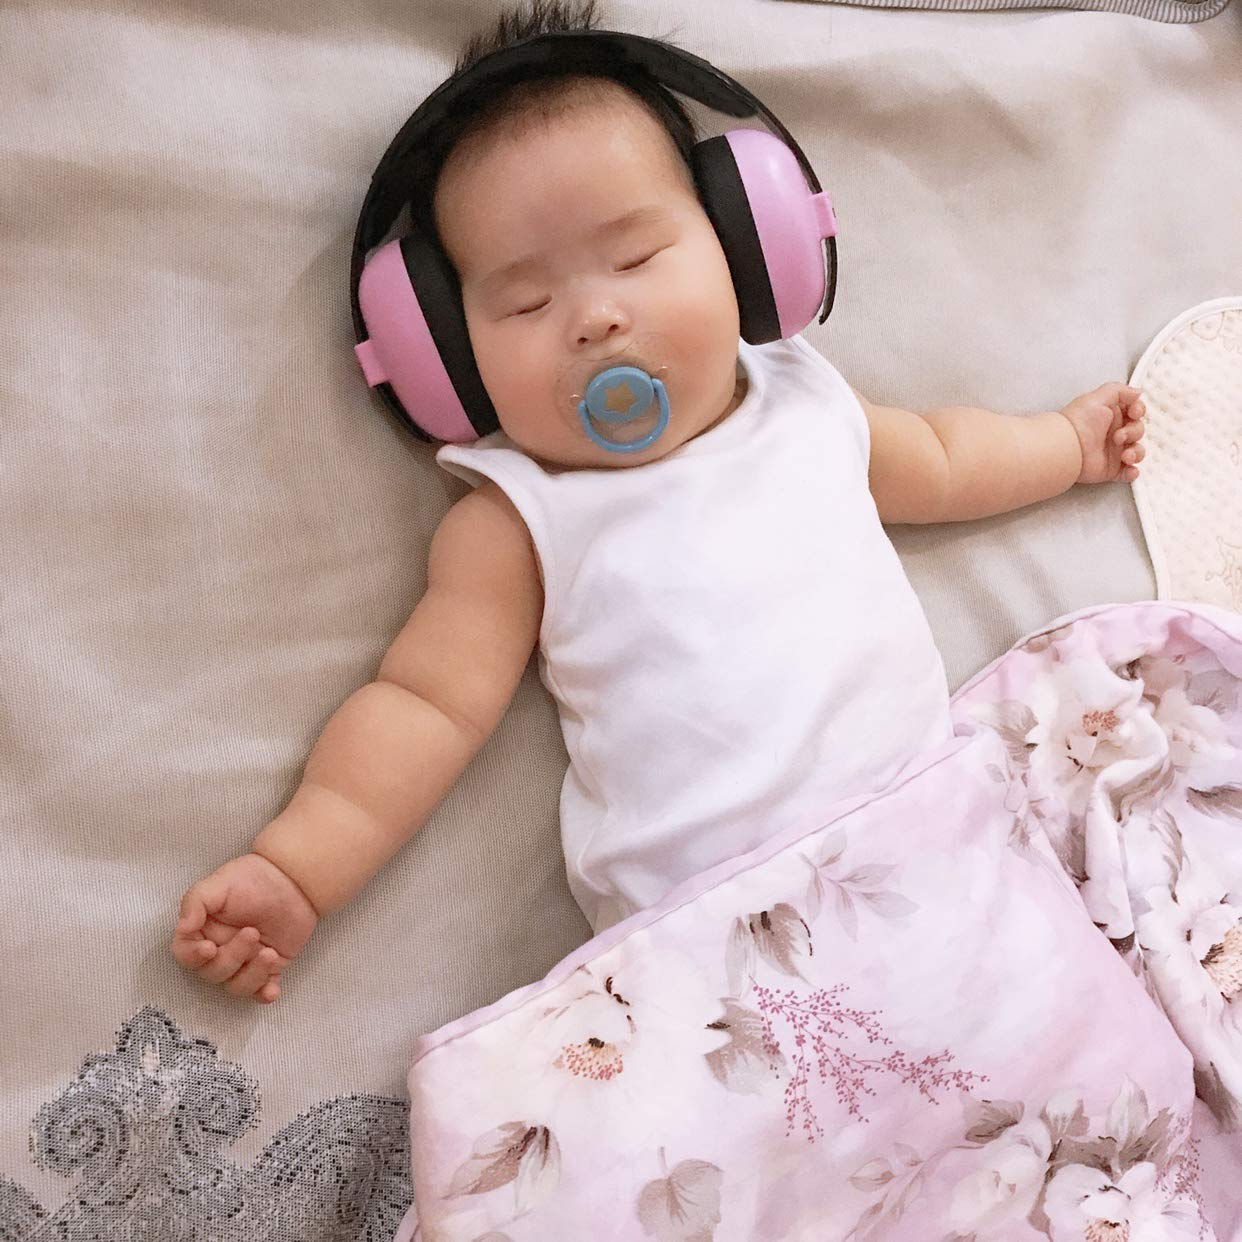 Upgraded Version Blue Baby Ear Protection Noise Canceling Headphones Adjustable Ear Muffs for Autism Newborn Infant Autism Toddlers for Sleeping Airplane Concerts Theater Fireworks